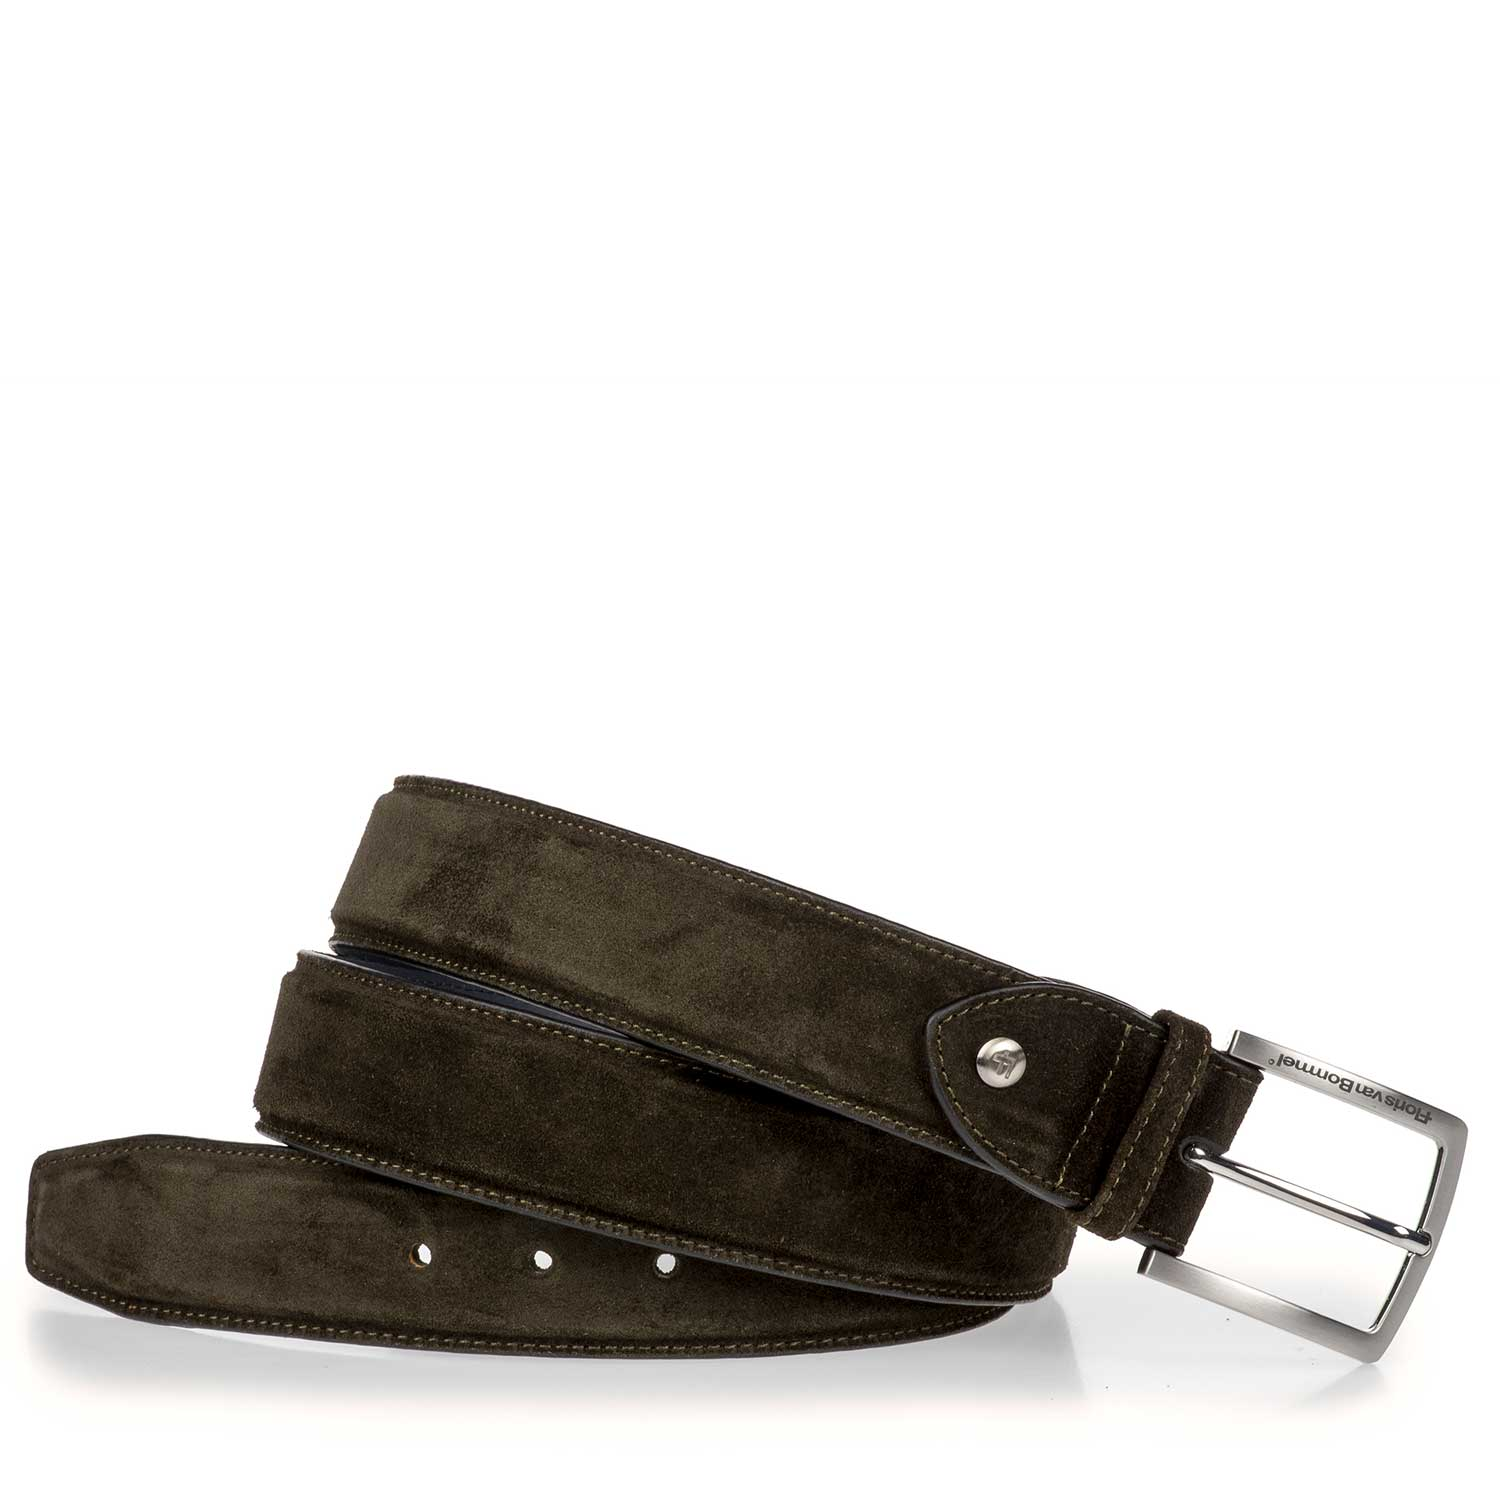 75189/11 - Olive green calf suede leather belt